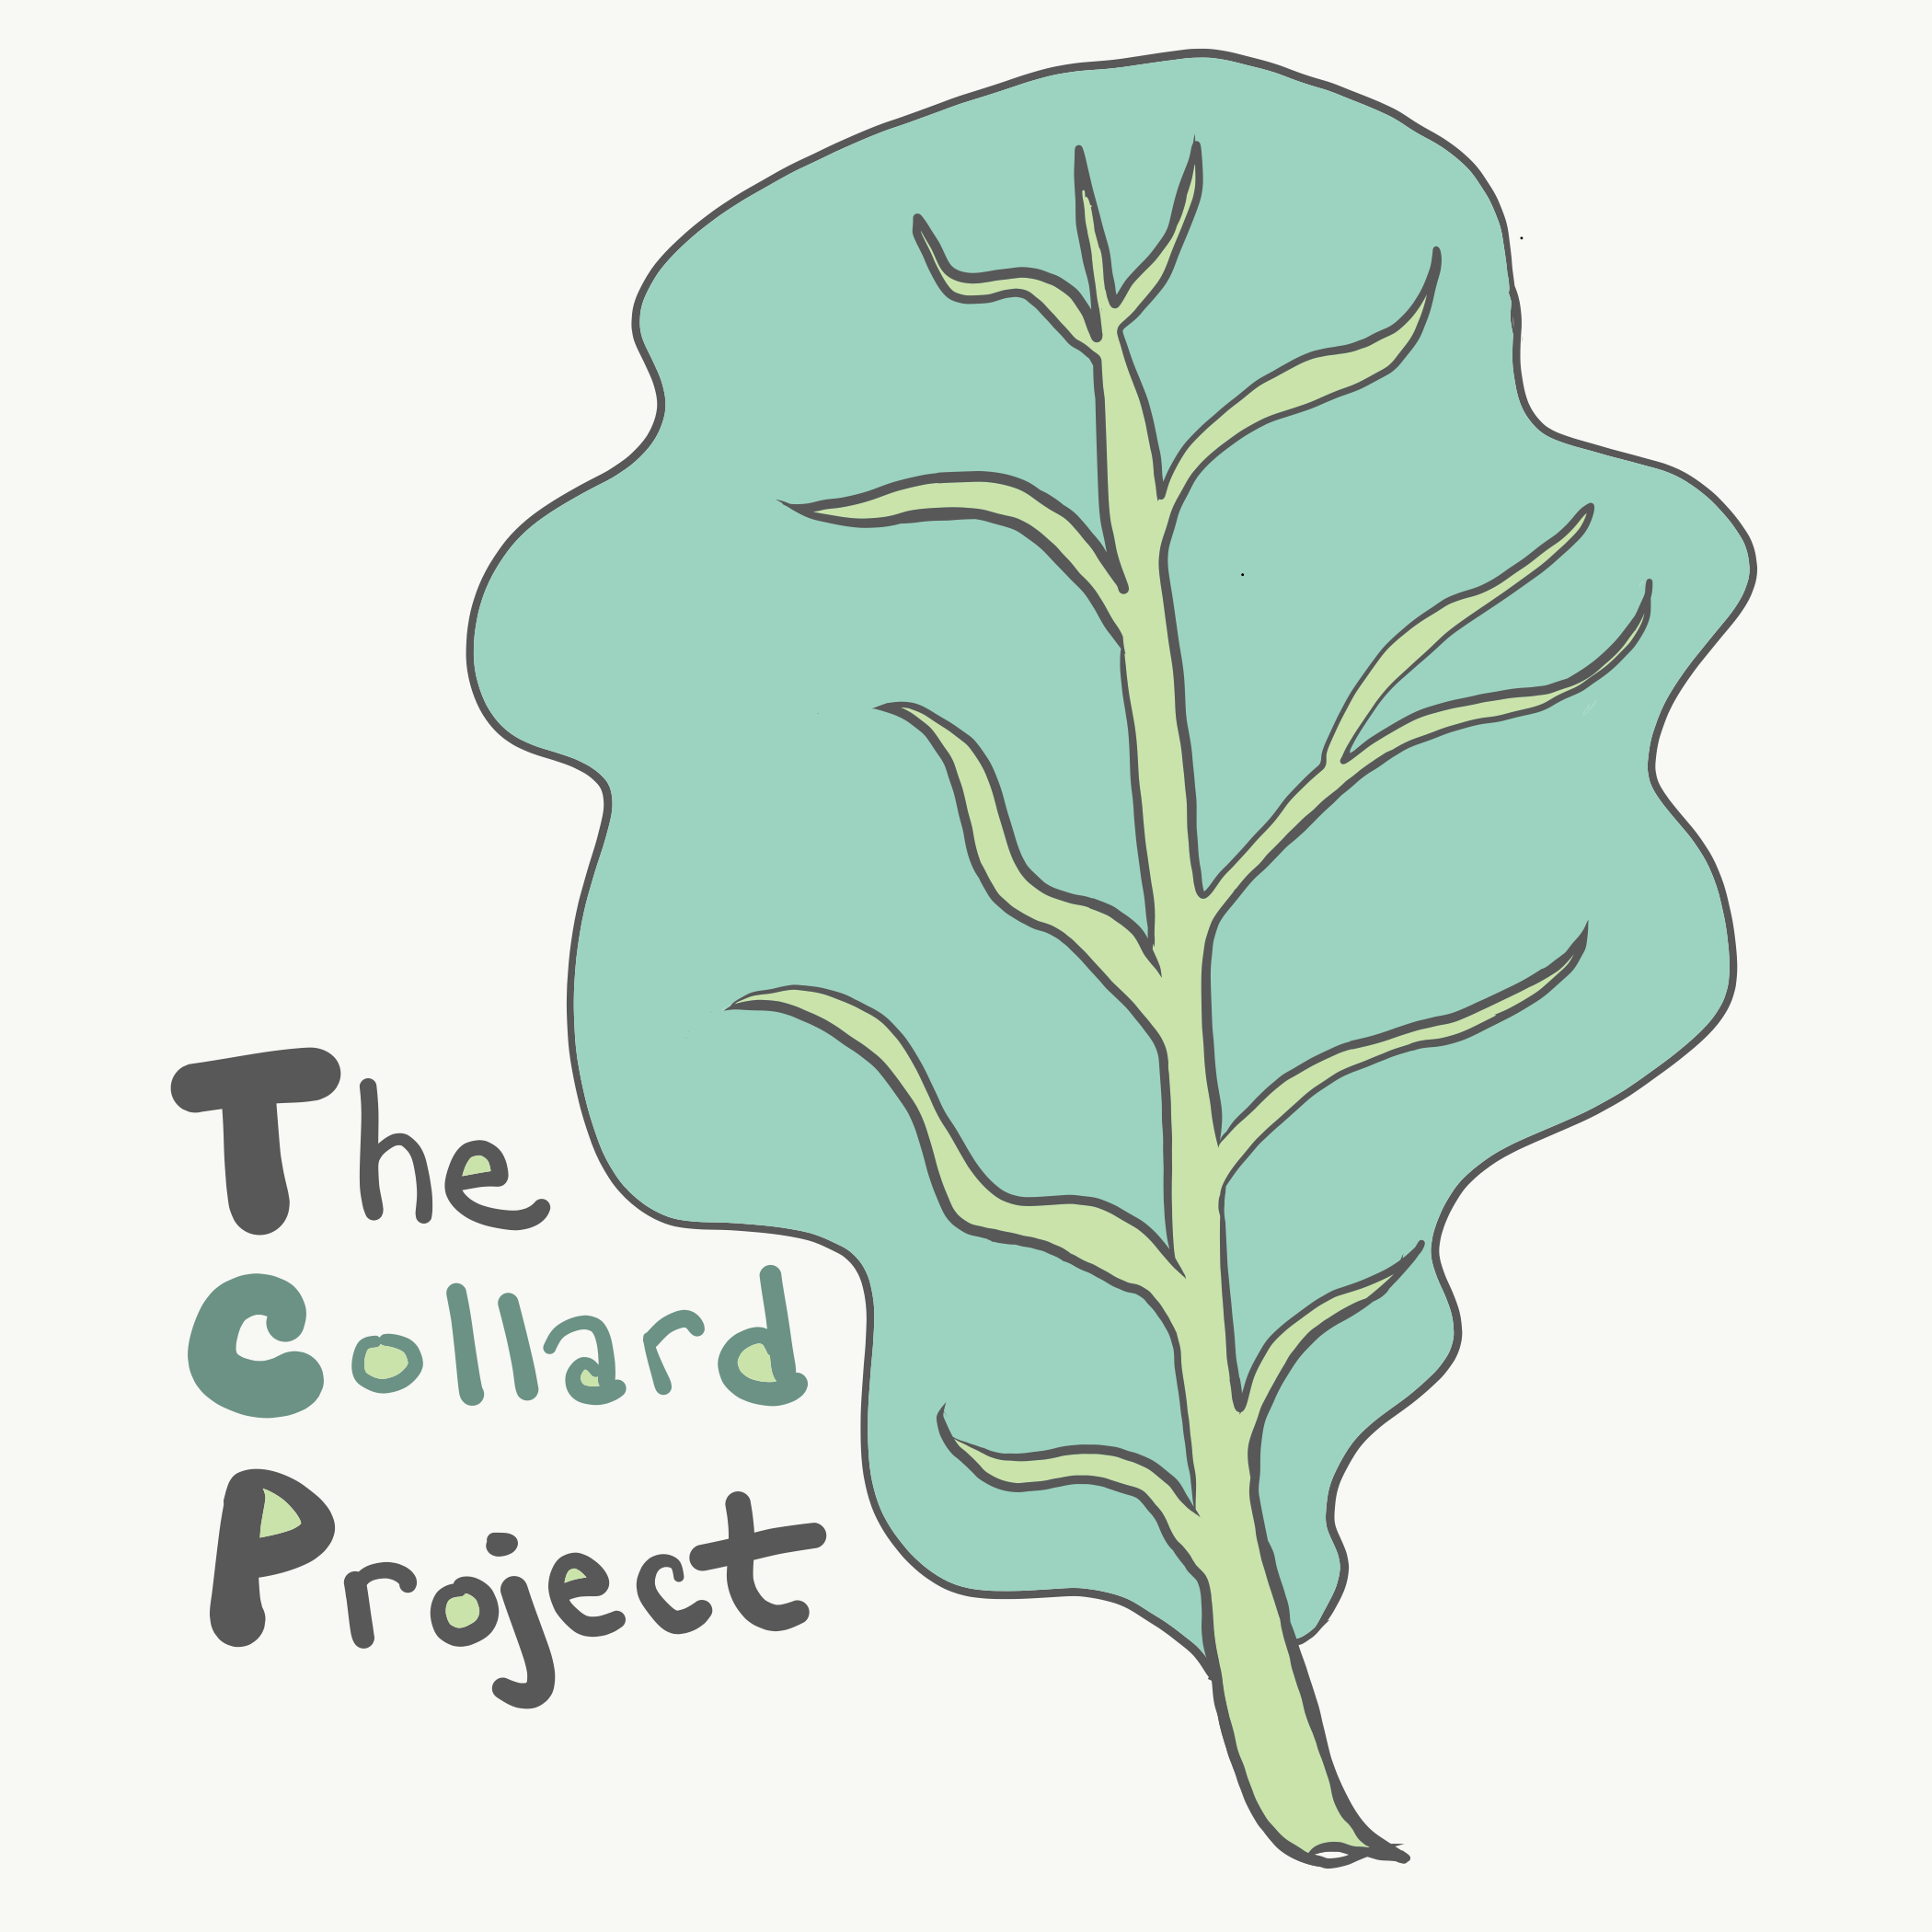 The Heirloom Collards Project